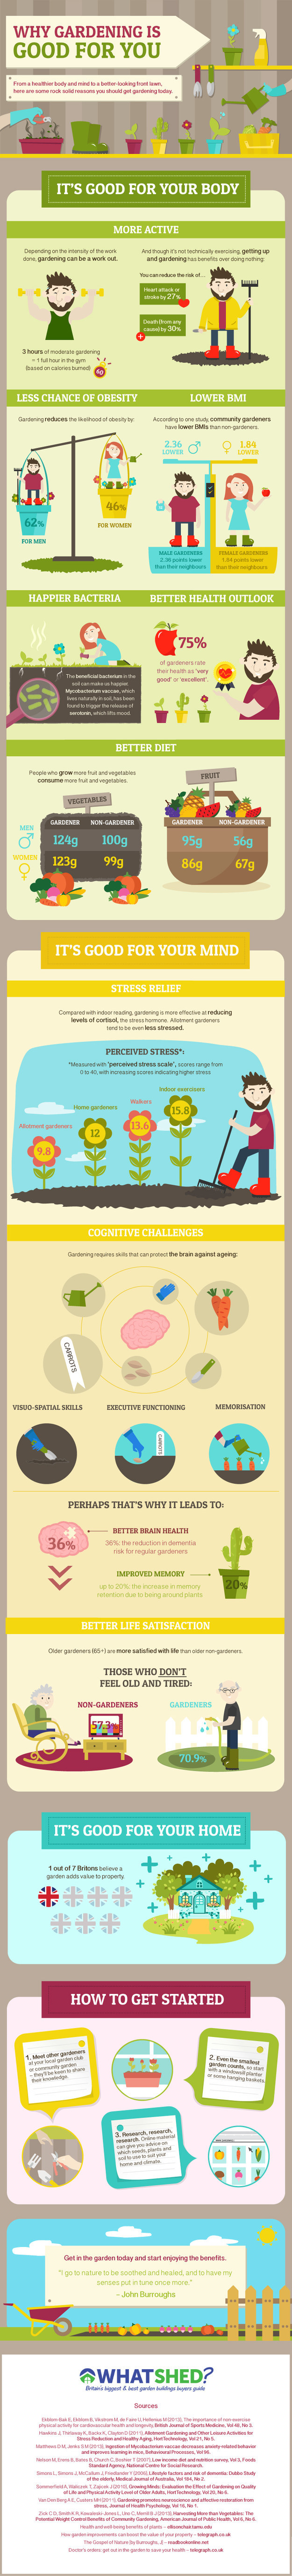 Now take all of that gardening knowledge and go outside and get dirty...it's good for you!